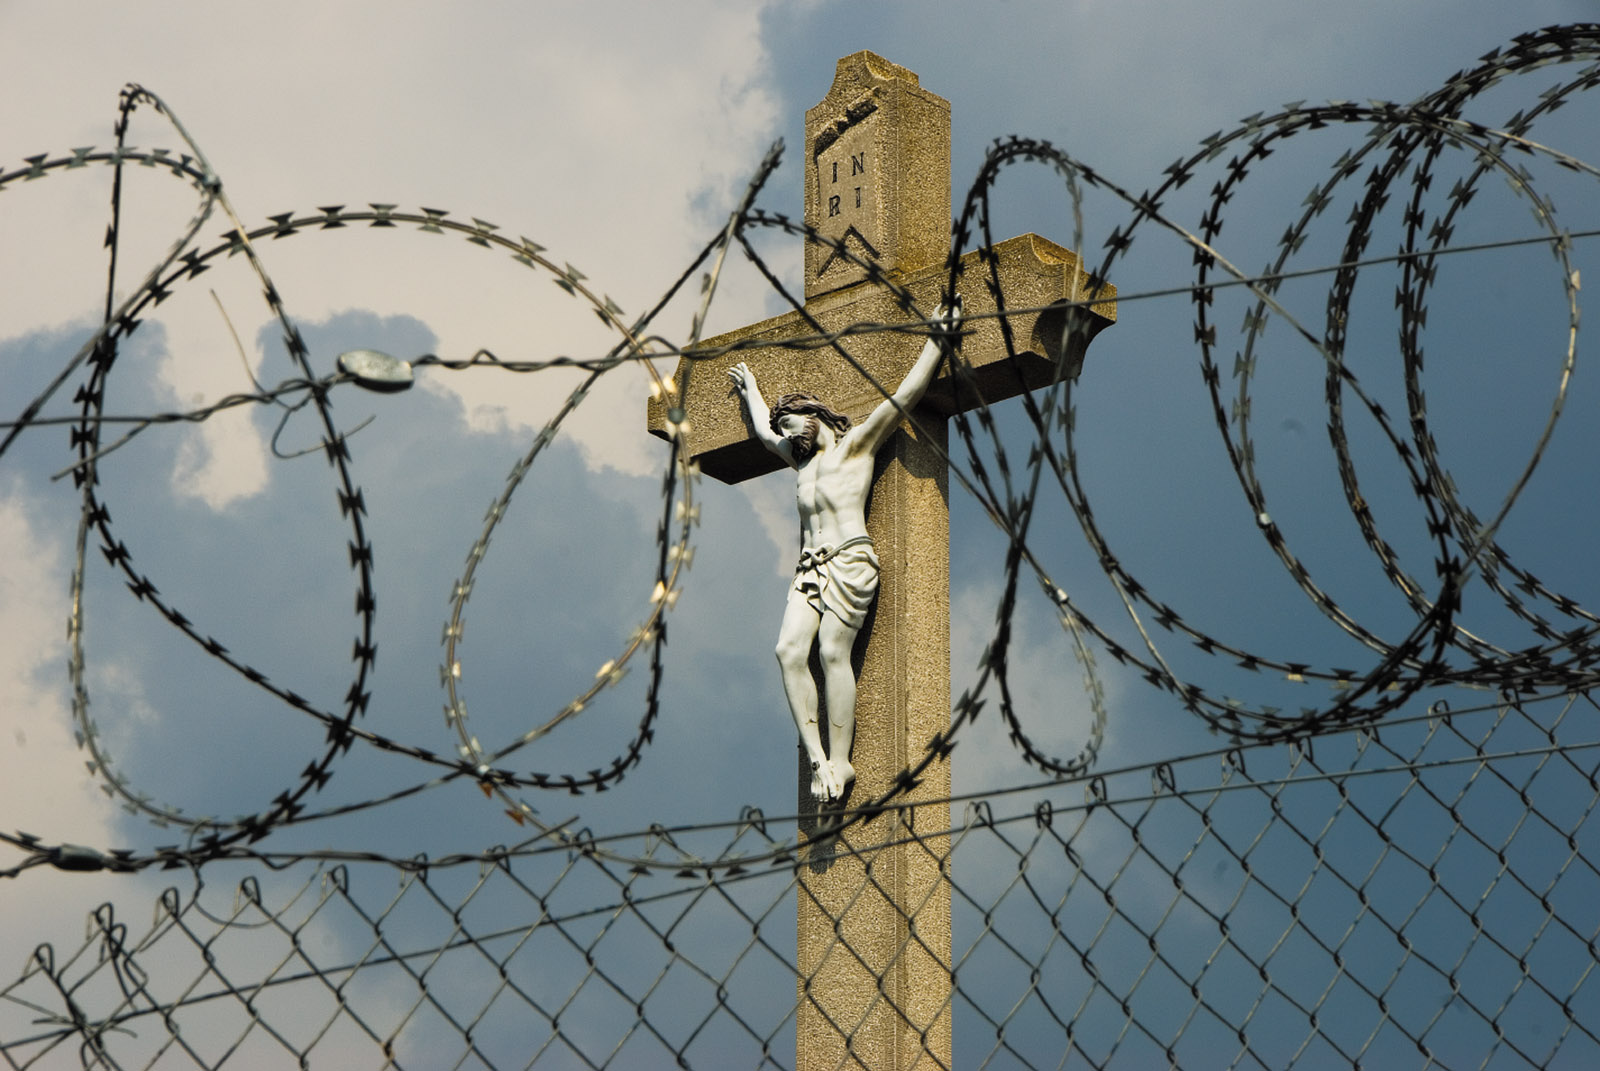 A Hungarian crucifix seen through the razor wire of the border fence, Rastina, Serbia, September 2016